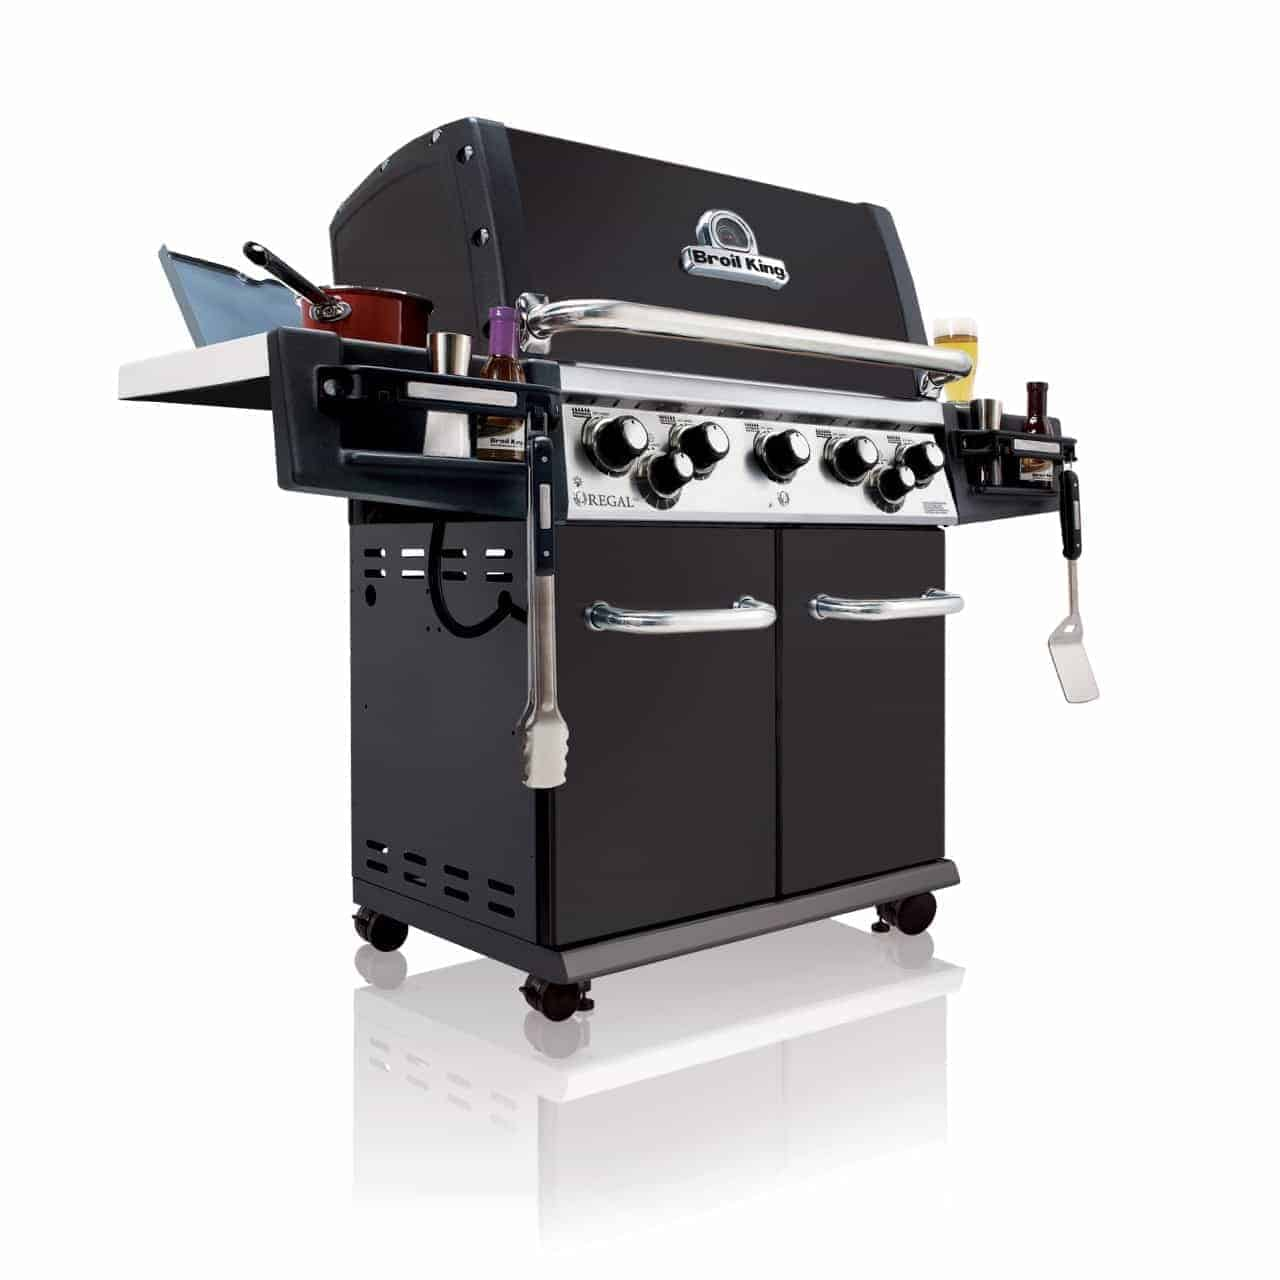 regal broil king grill natural gas broil king regal 590 pro black 958283 all gas barbecues. Black Bedroom Furniture Sets. Home Design Ideas